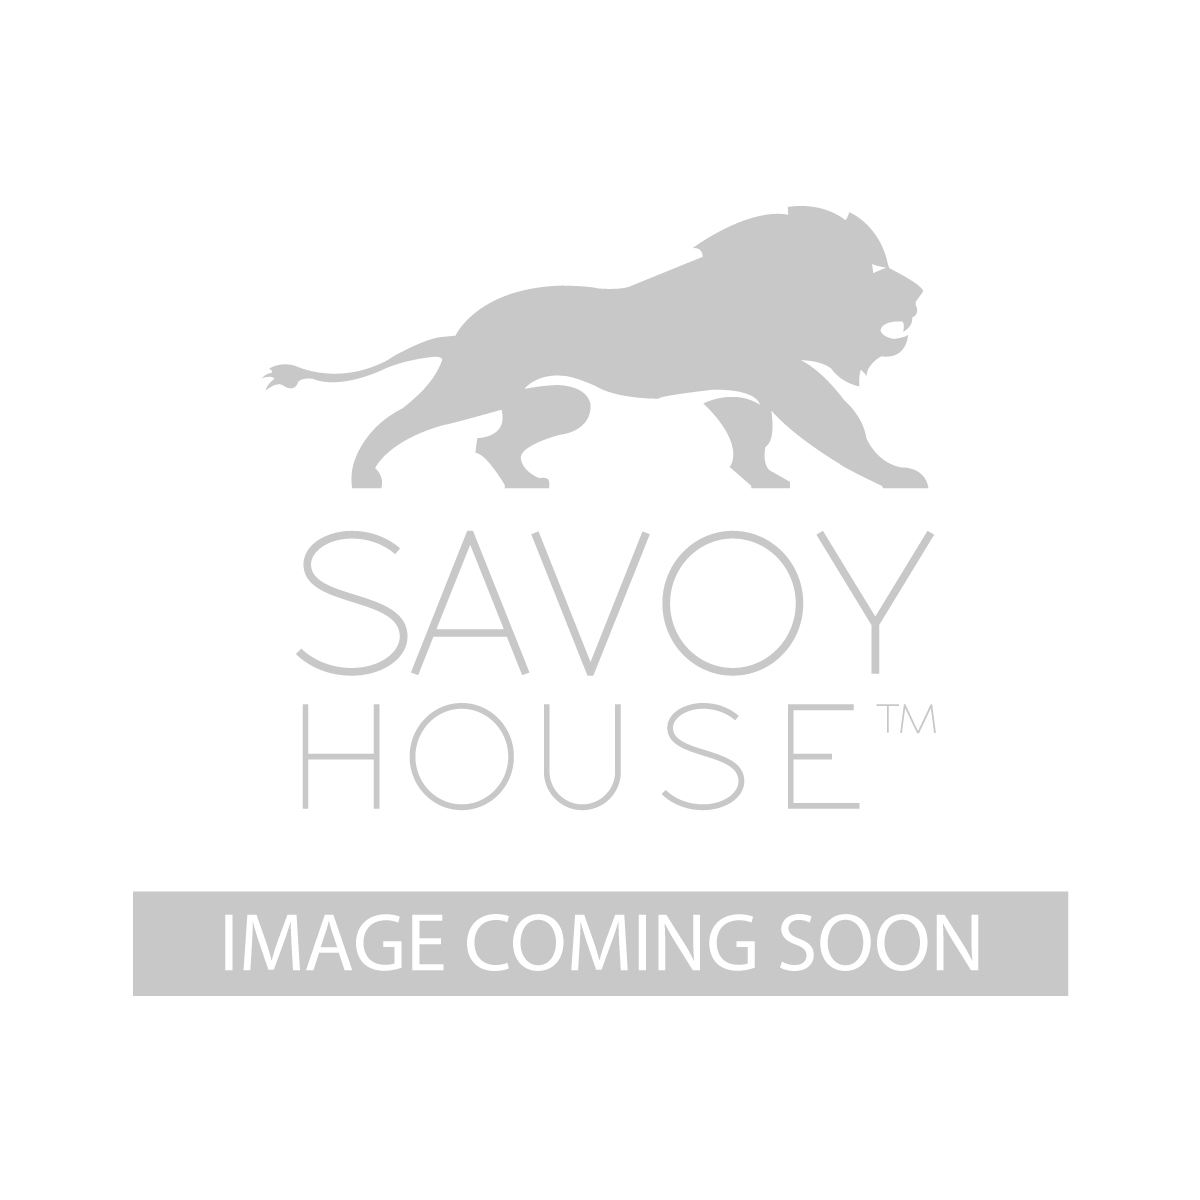 3 3041 4 13 Glenwood 4 Light Foyer By Savoy House